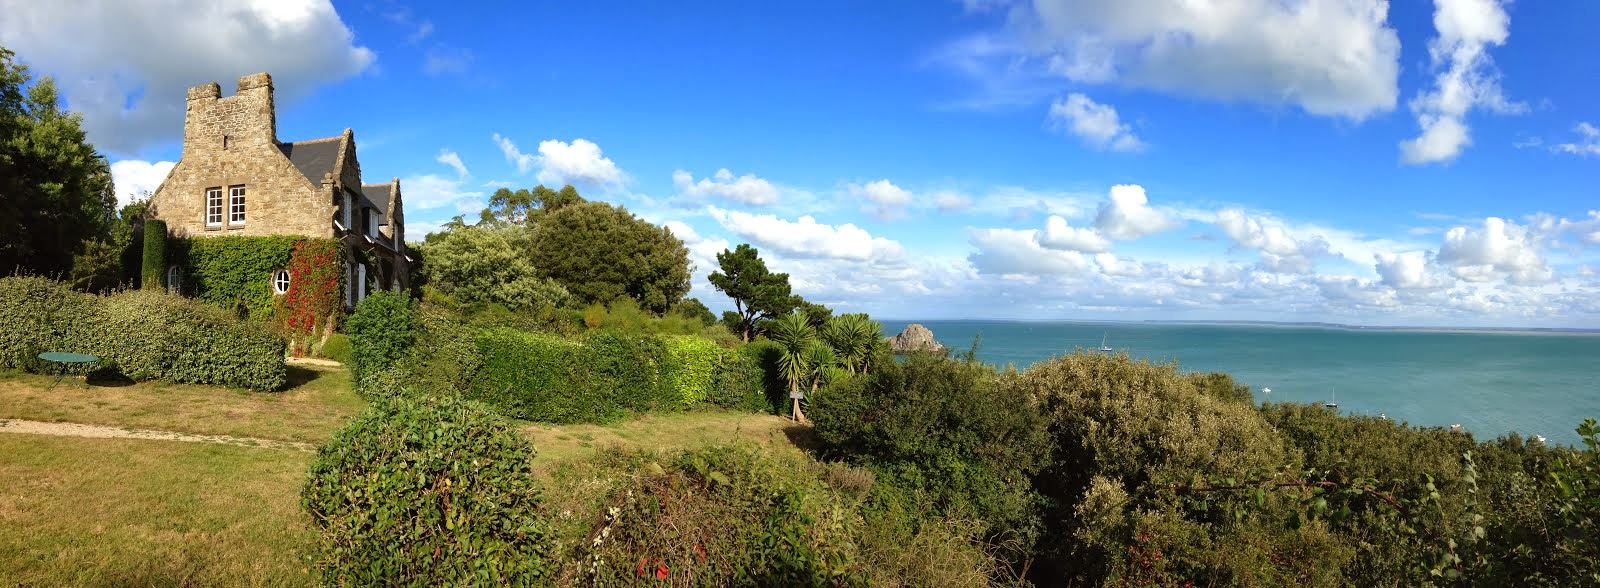 Les Remains, in Cancale, Bretagne